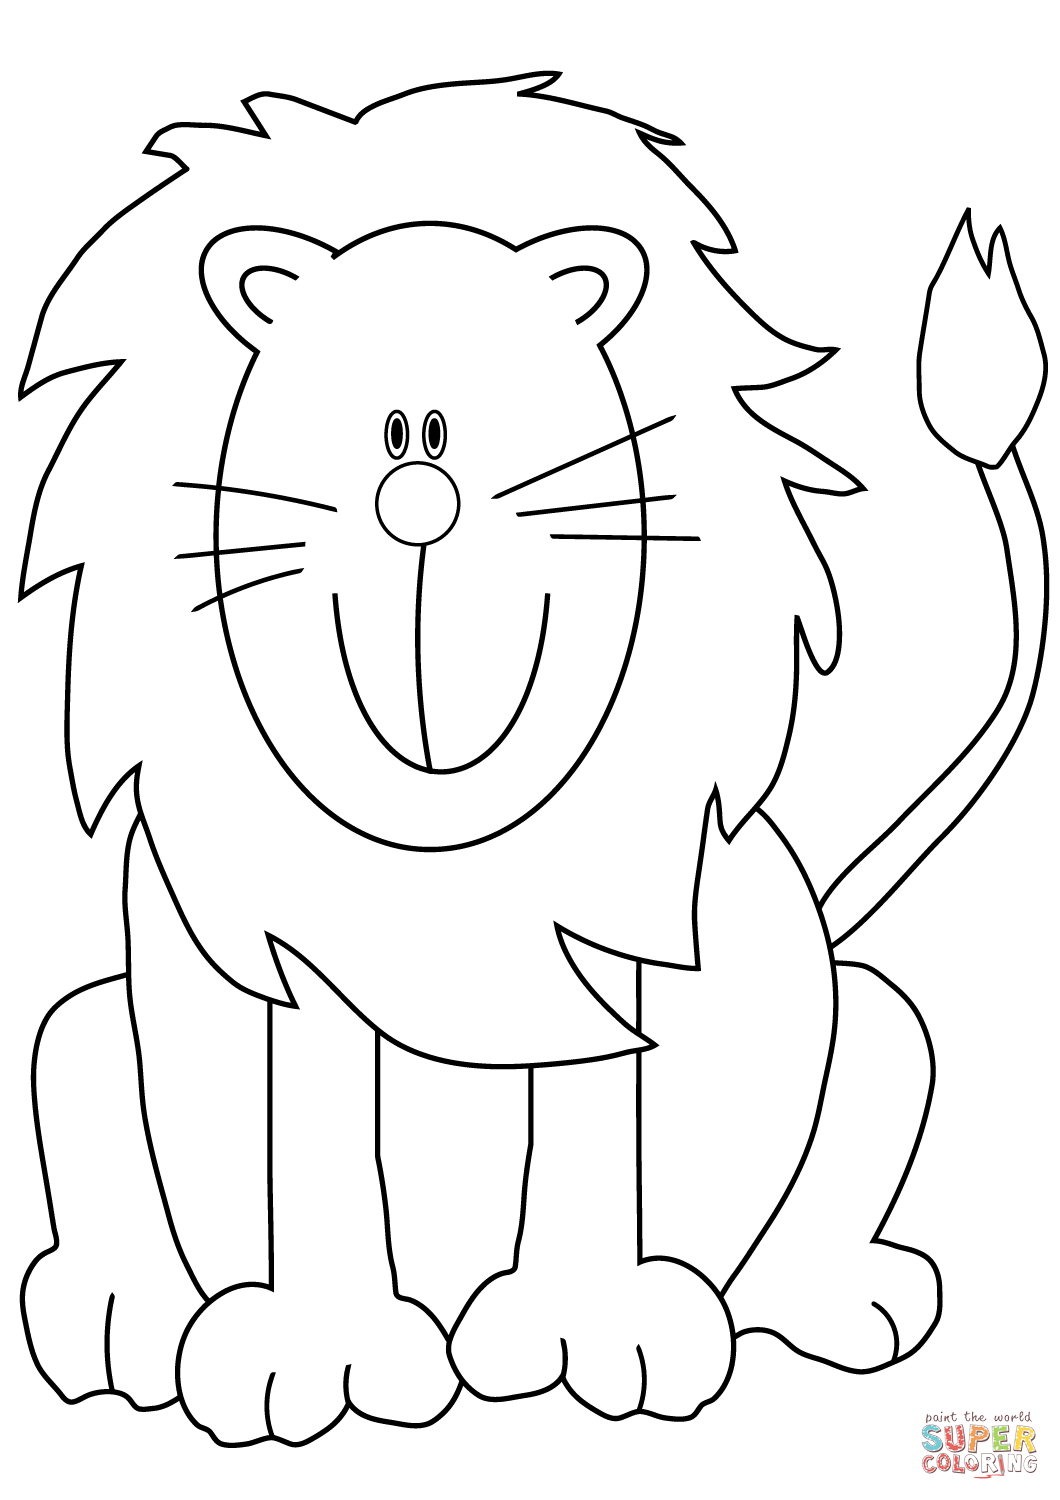 printable pictures of lions lovely cartoon lion coloring page free printable of lions printable pictures